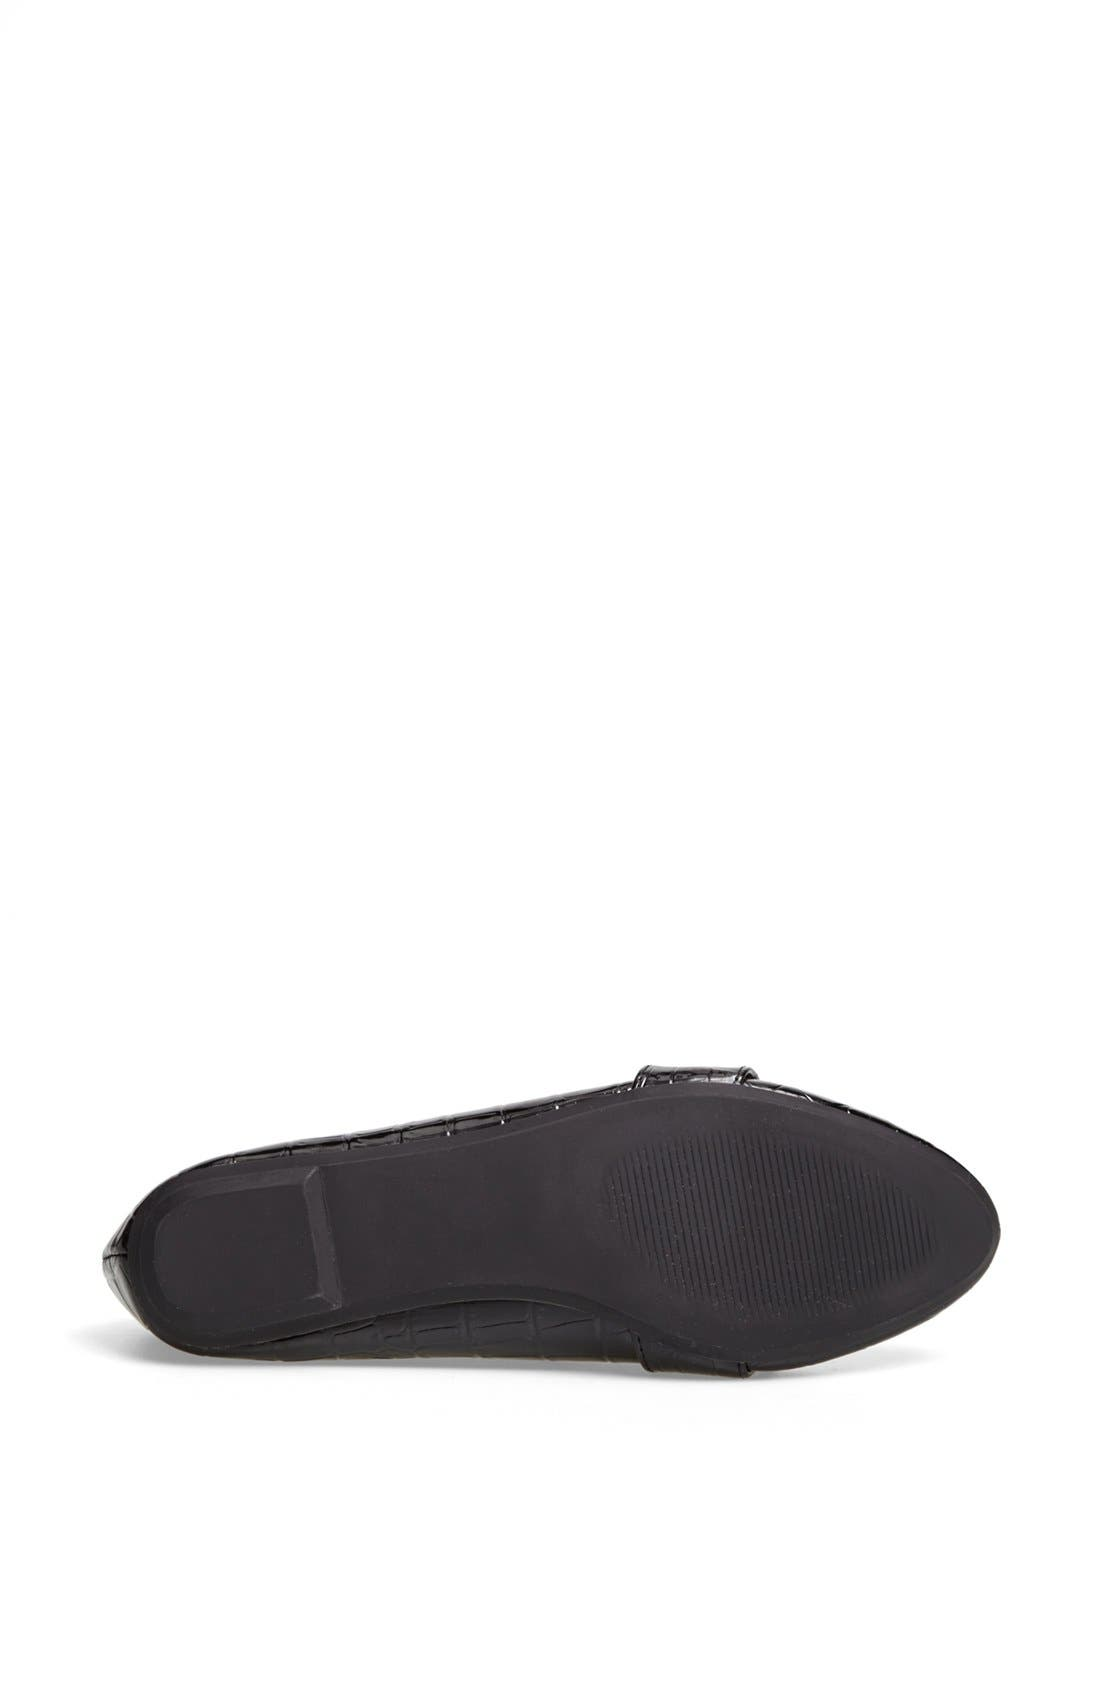 Alternate Image 4  - Topshop 'Mardi 2' Croc Embossed Flat